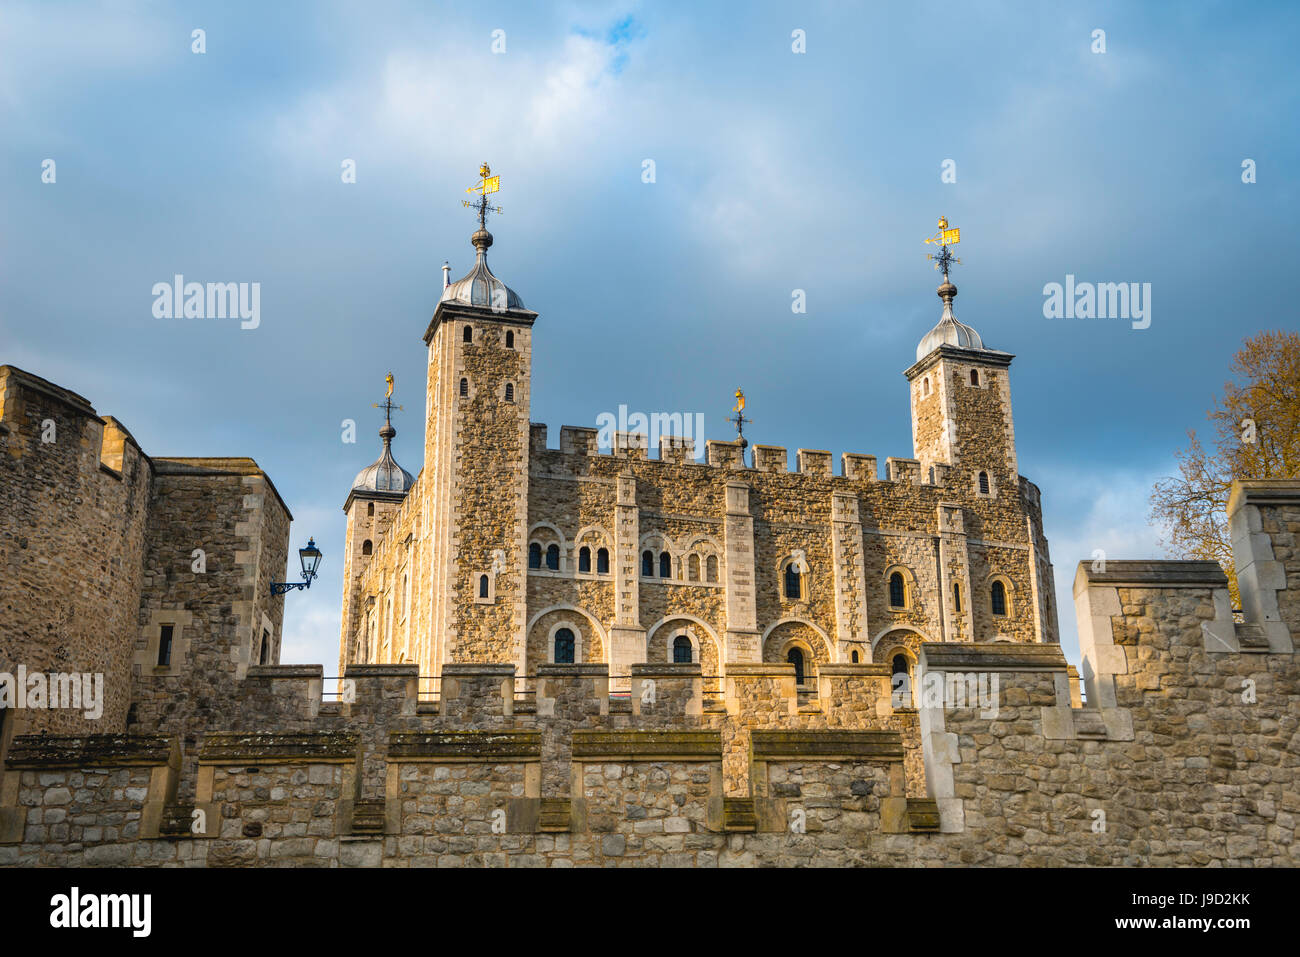 Tower of London, London, England, United Kingdom - Stock Image